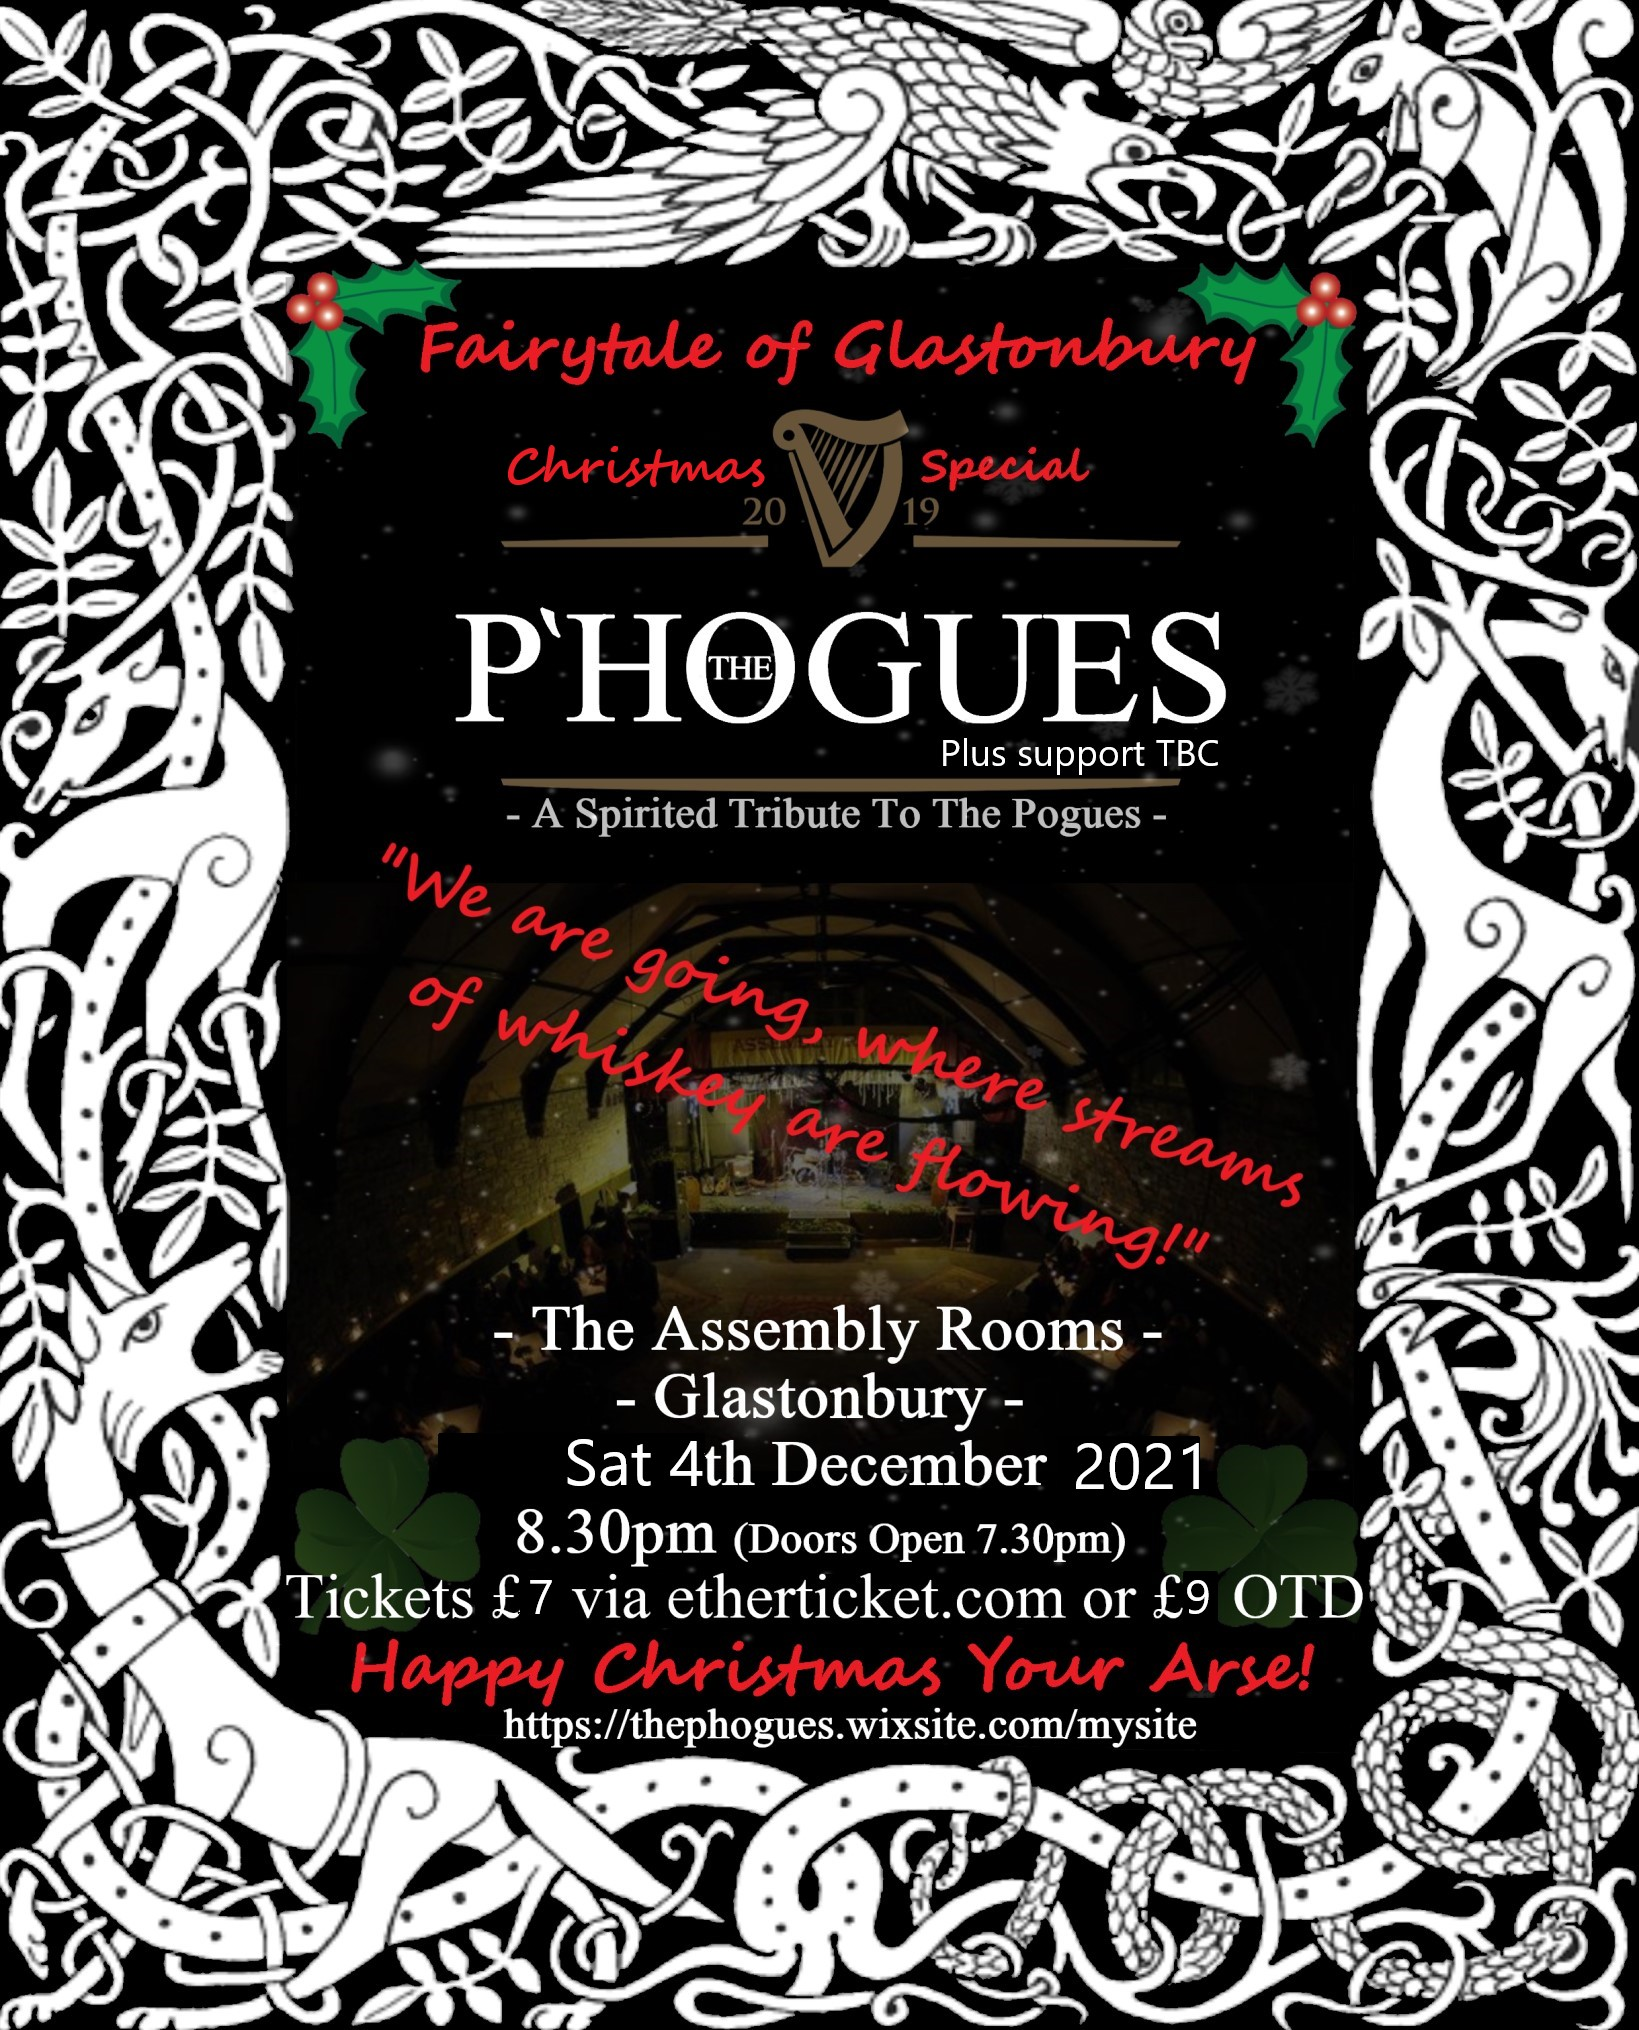 Event Poster For Fairytale of Glastonbury - With THE P'HOGUES - A Christmas Special + Special Guests: The Legendary snakeSNAKEsnake